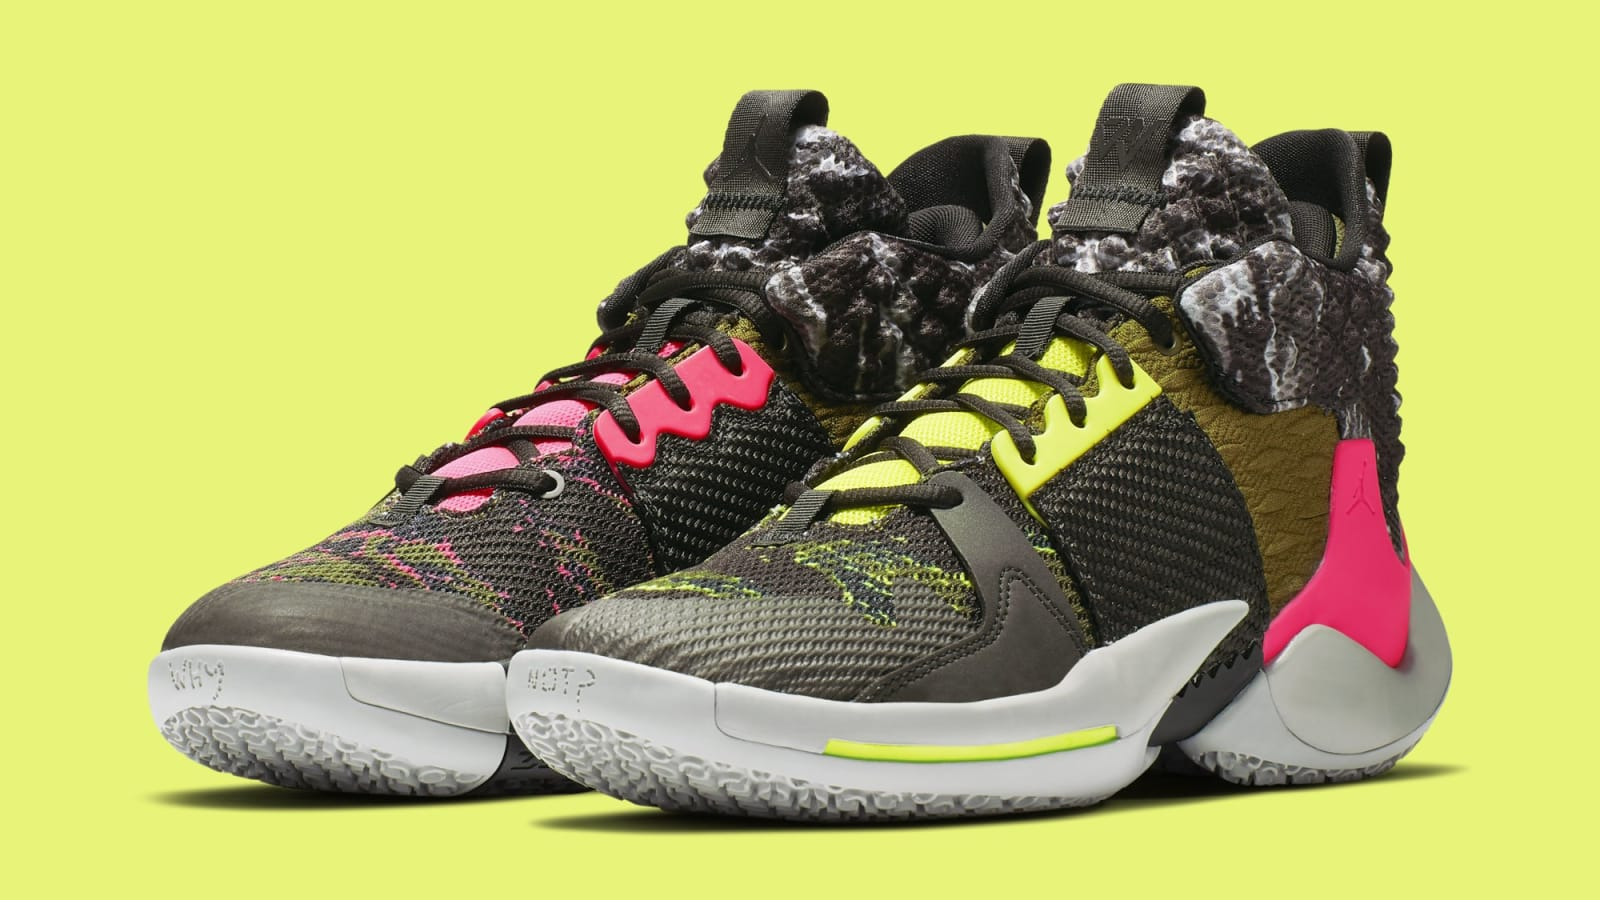 new york 20a92 16810 A Rebellious Colorway of the Jordan Why Not Zer0.2